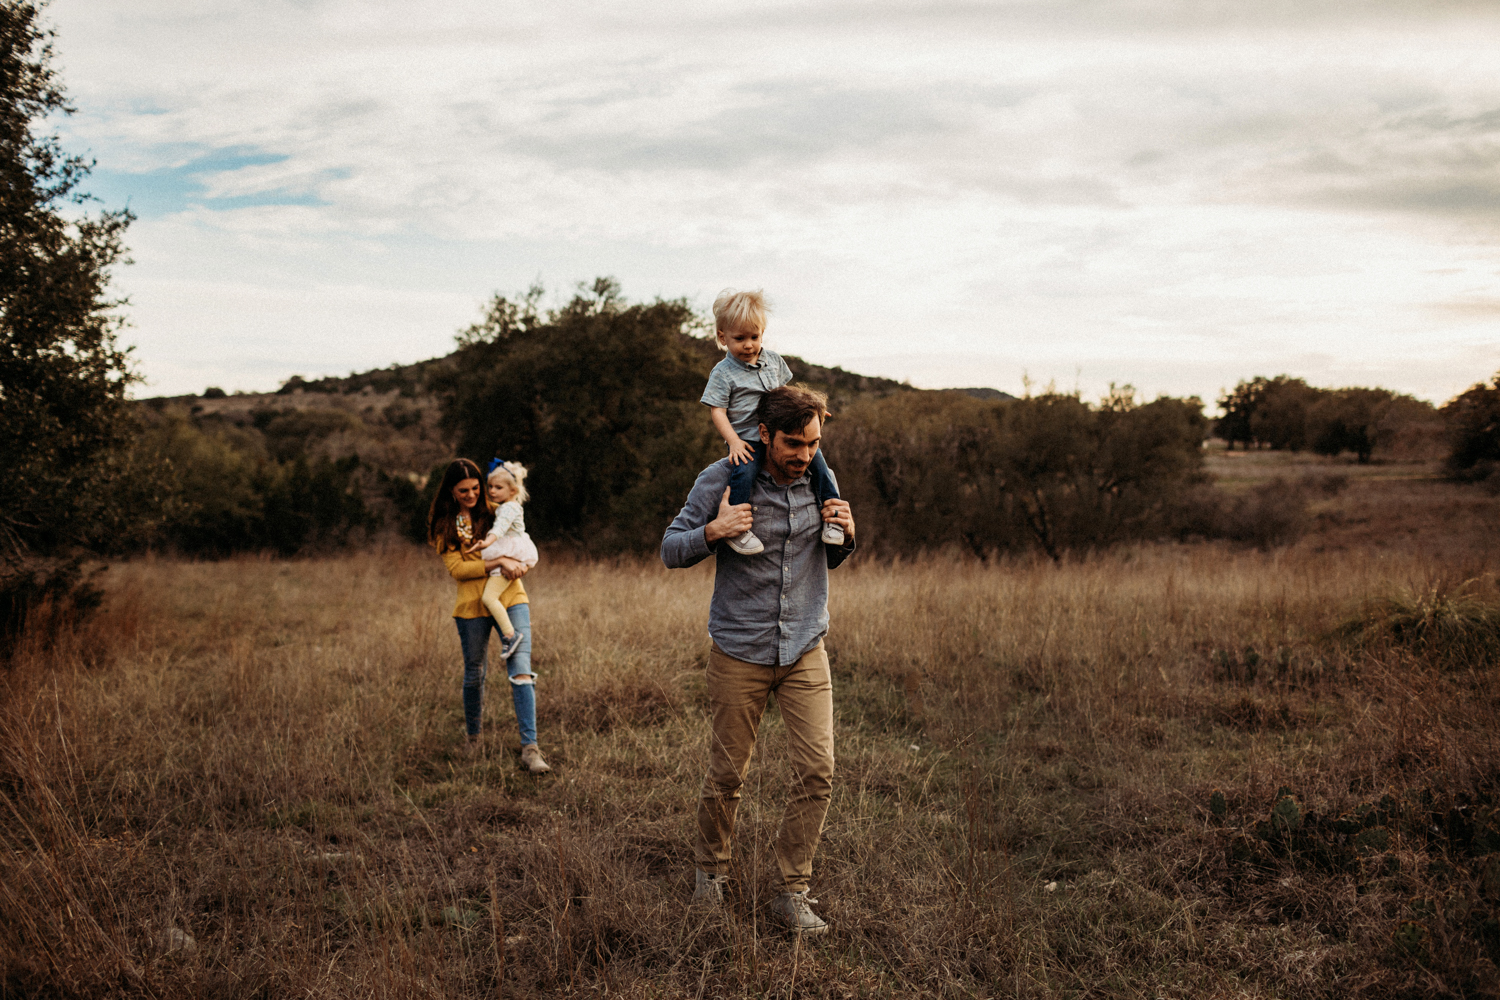 0939_san antonio family lifestyle photographer.jpg